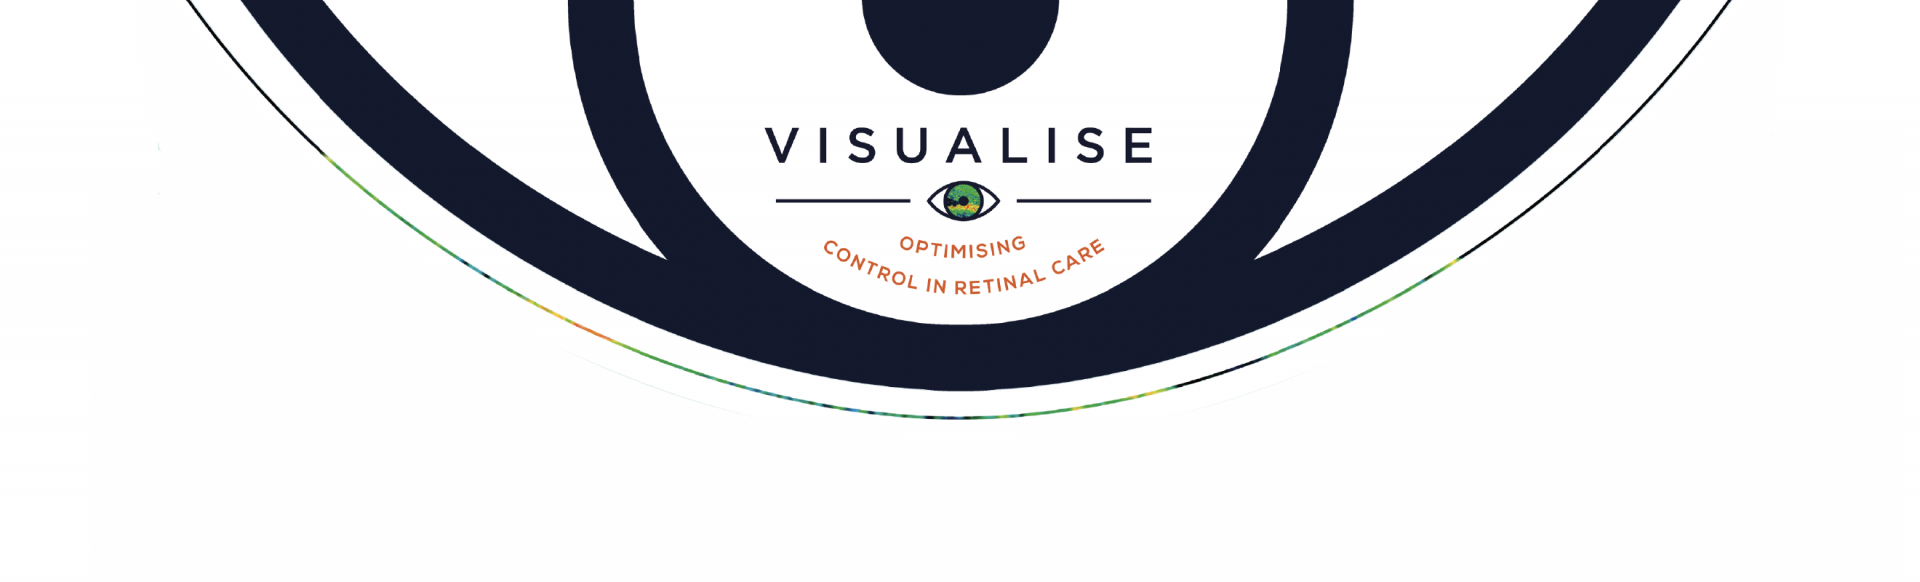 Top banner. Visualise. Optimising control in retinal care.